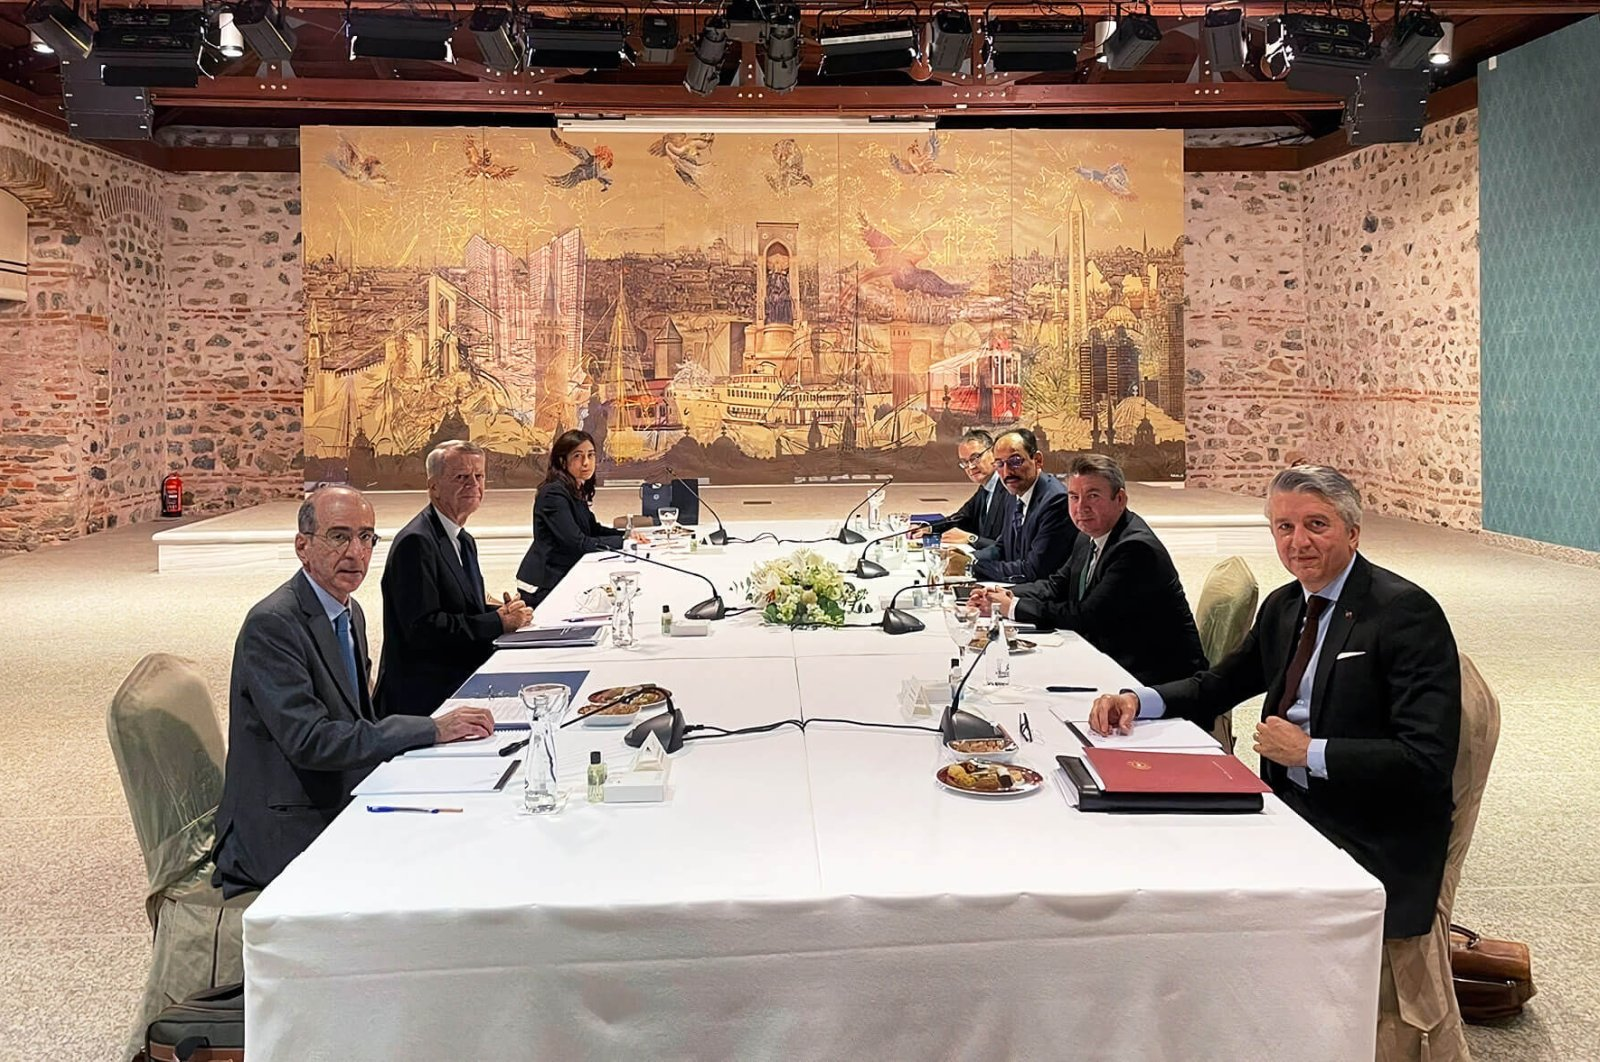 Turkish and Greek delegations meet for the exploratory talks at the Dolmabahçe Presidential Working Office in Istanbul, Turkey, Jan. 25, 2021.